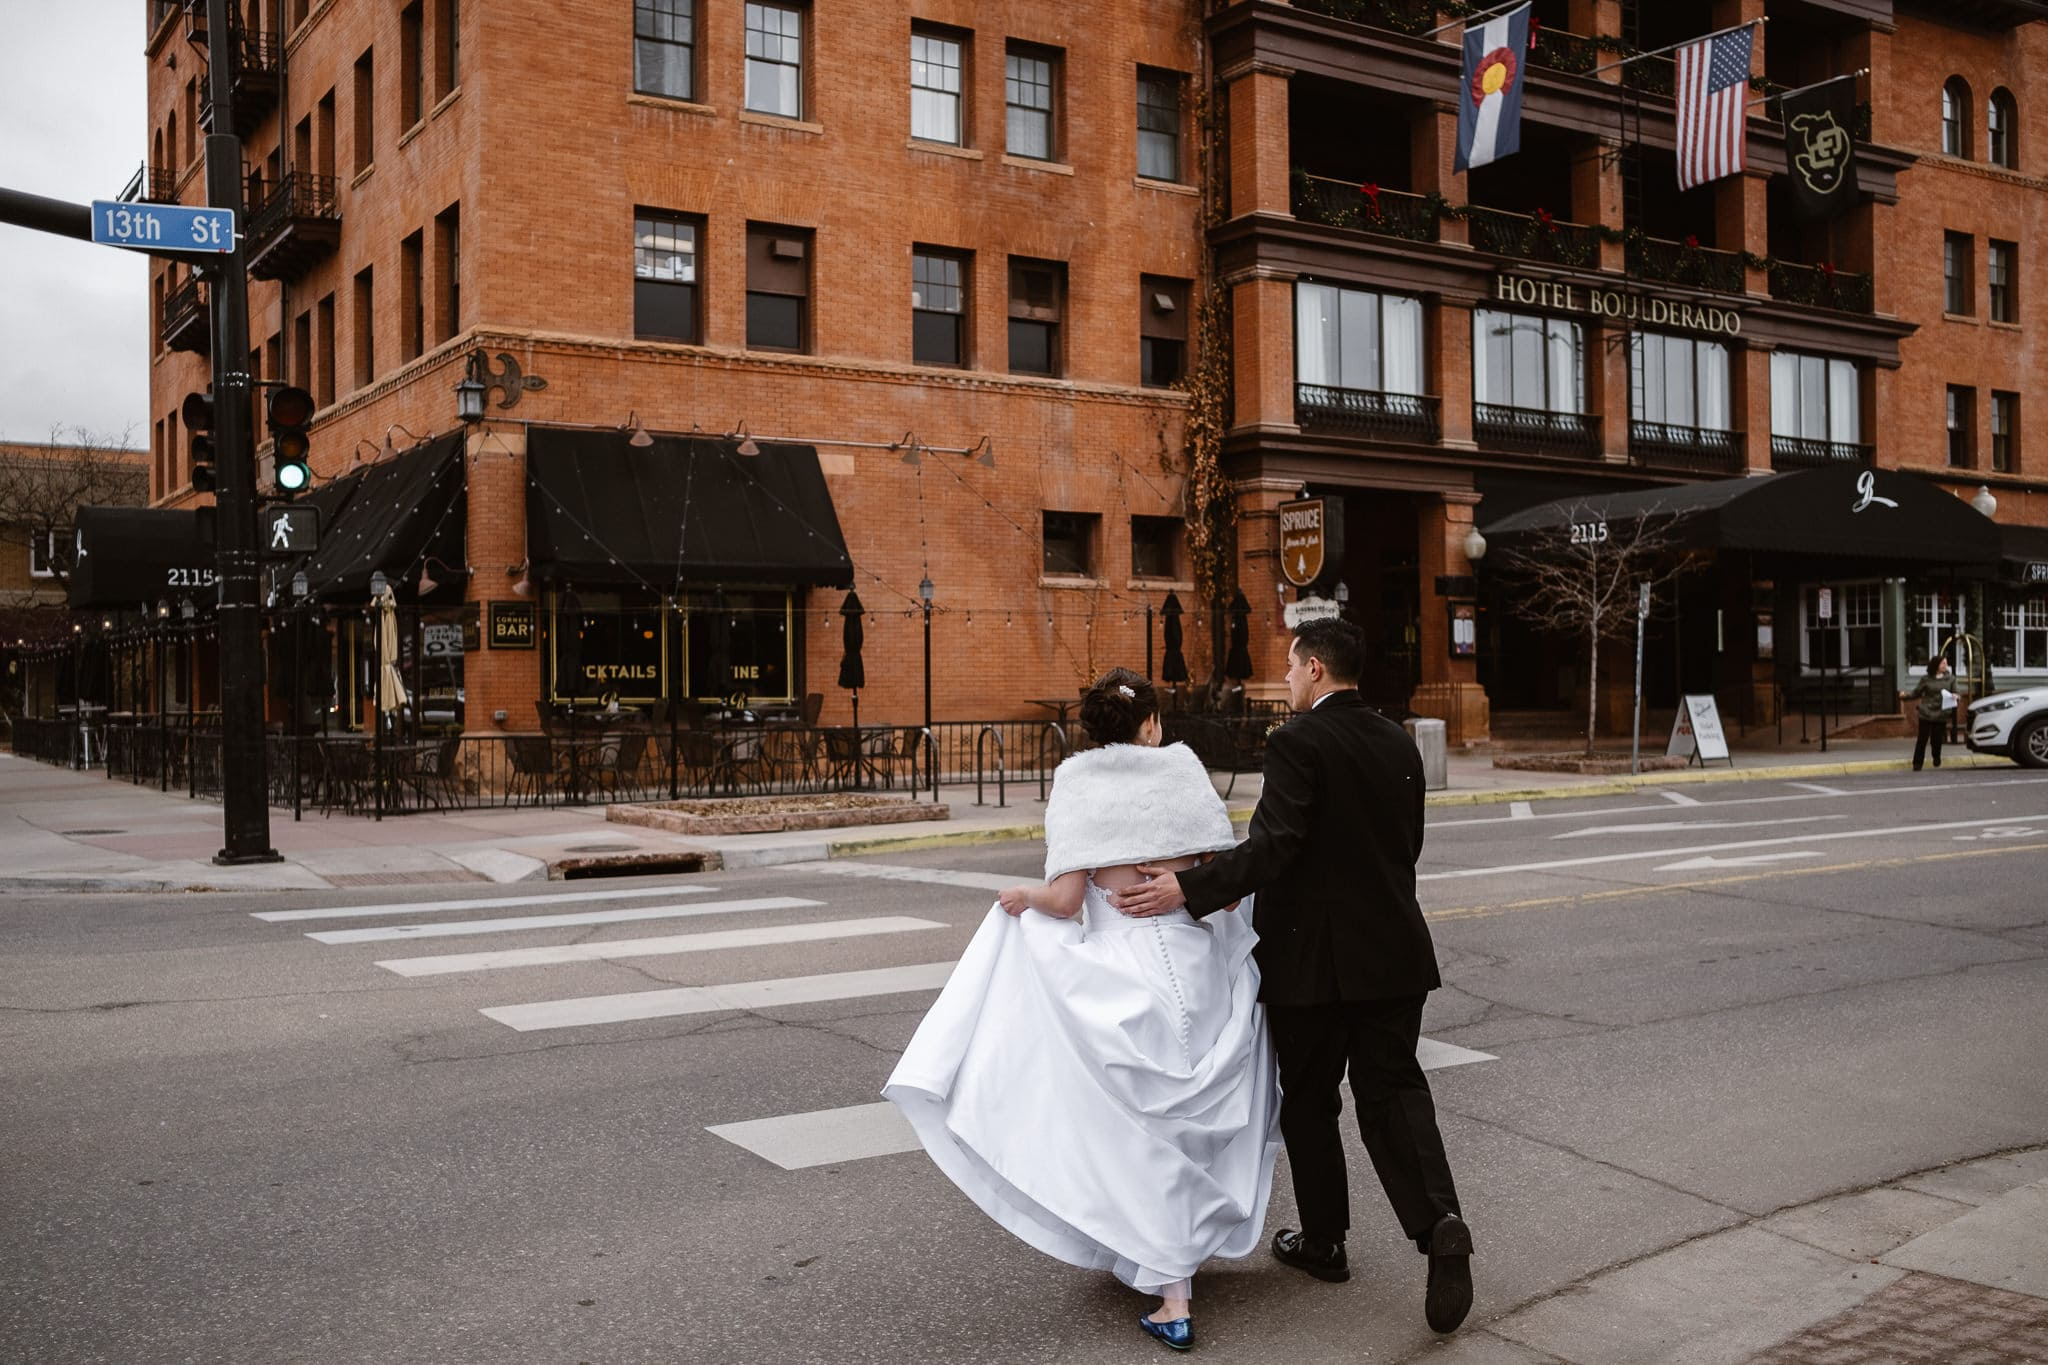 Rembrandt Yard wedding photographer, Boulder wedding photographer, Colorado Jewish wedding, bride and groom crossing street outside Hotel Boulderado